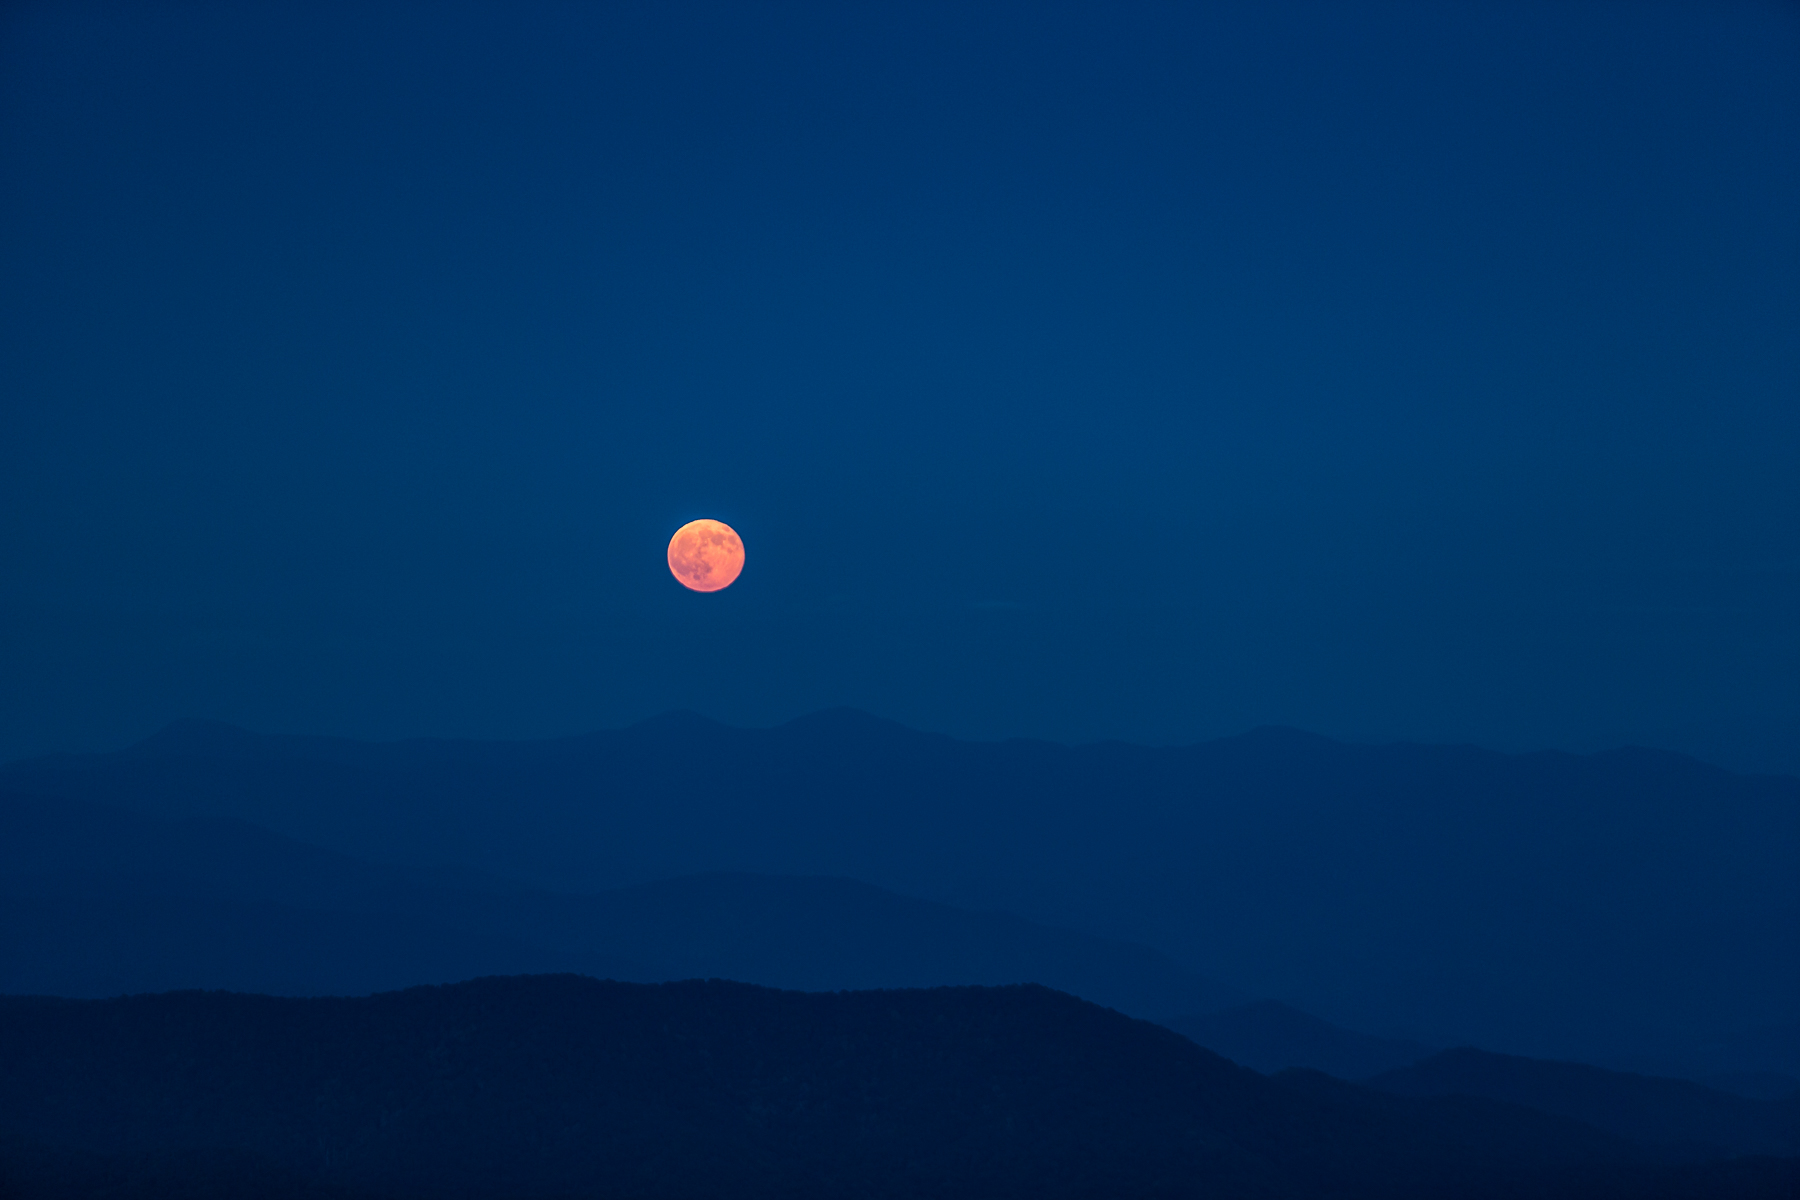 Moonrise over the Great Smoky Mountains, looking towards North Carolina.